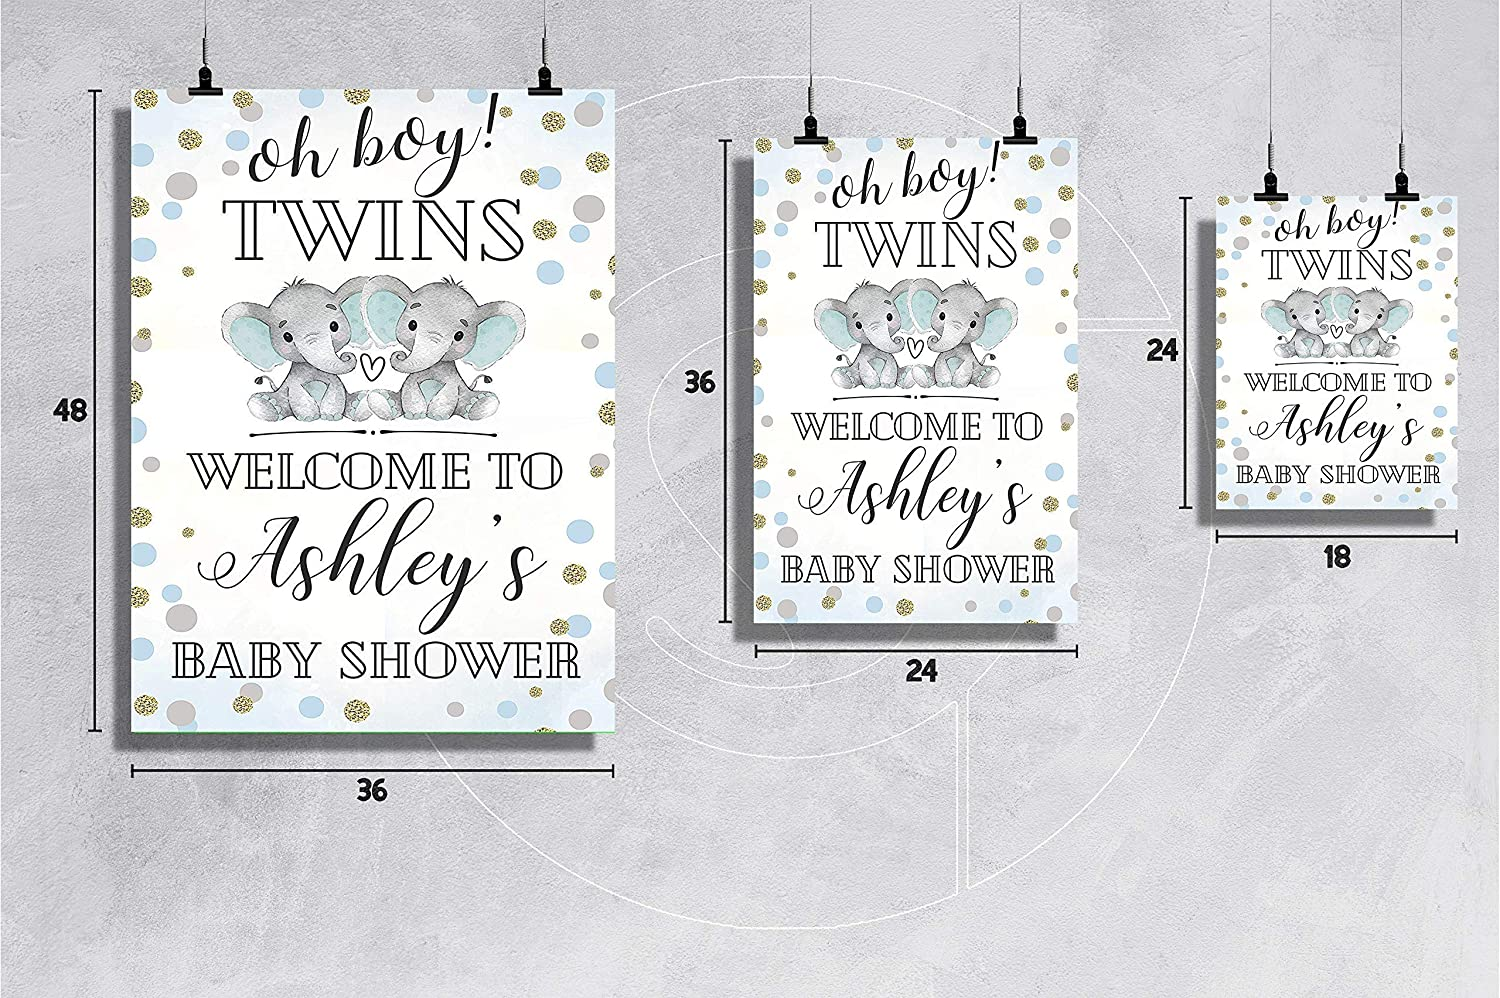 Baby Shower Welcome Poster Welcome Sign Print size 24x36 18x24 Twin Baby Shower Welcome Sign Twin Boys Baby Shower Reception Sign Baby Shower Decor Baby Boys Shower Welcome Sign